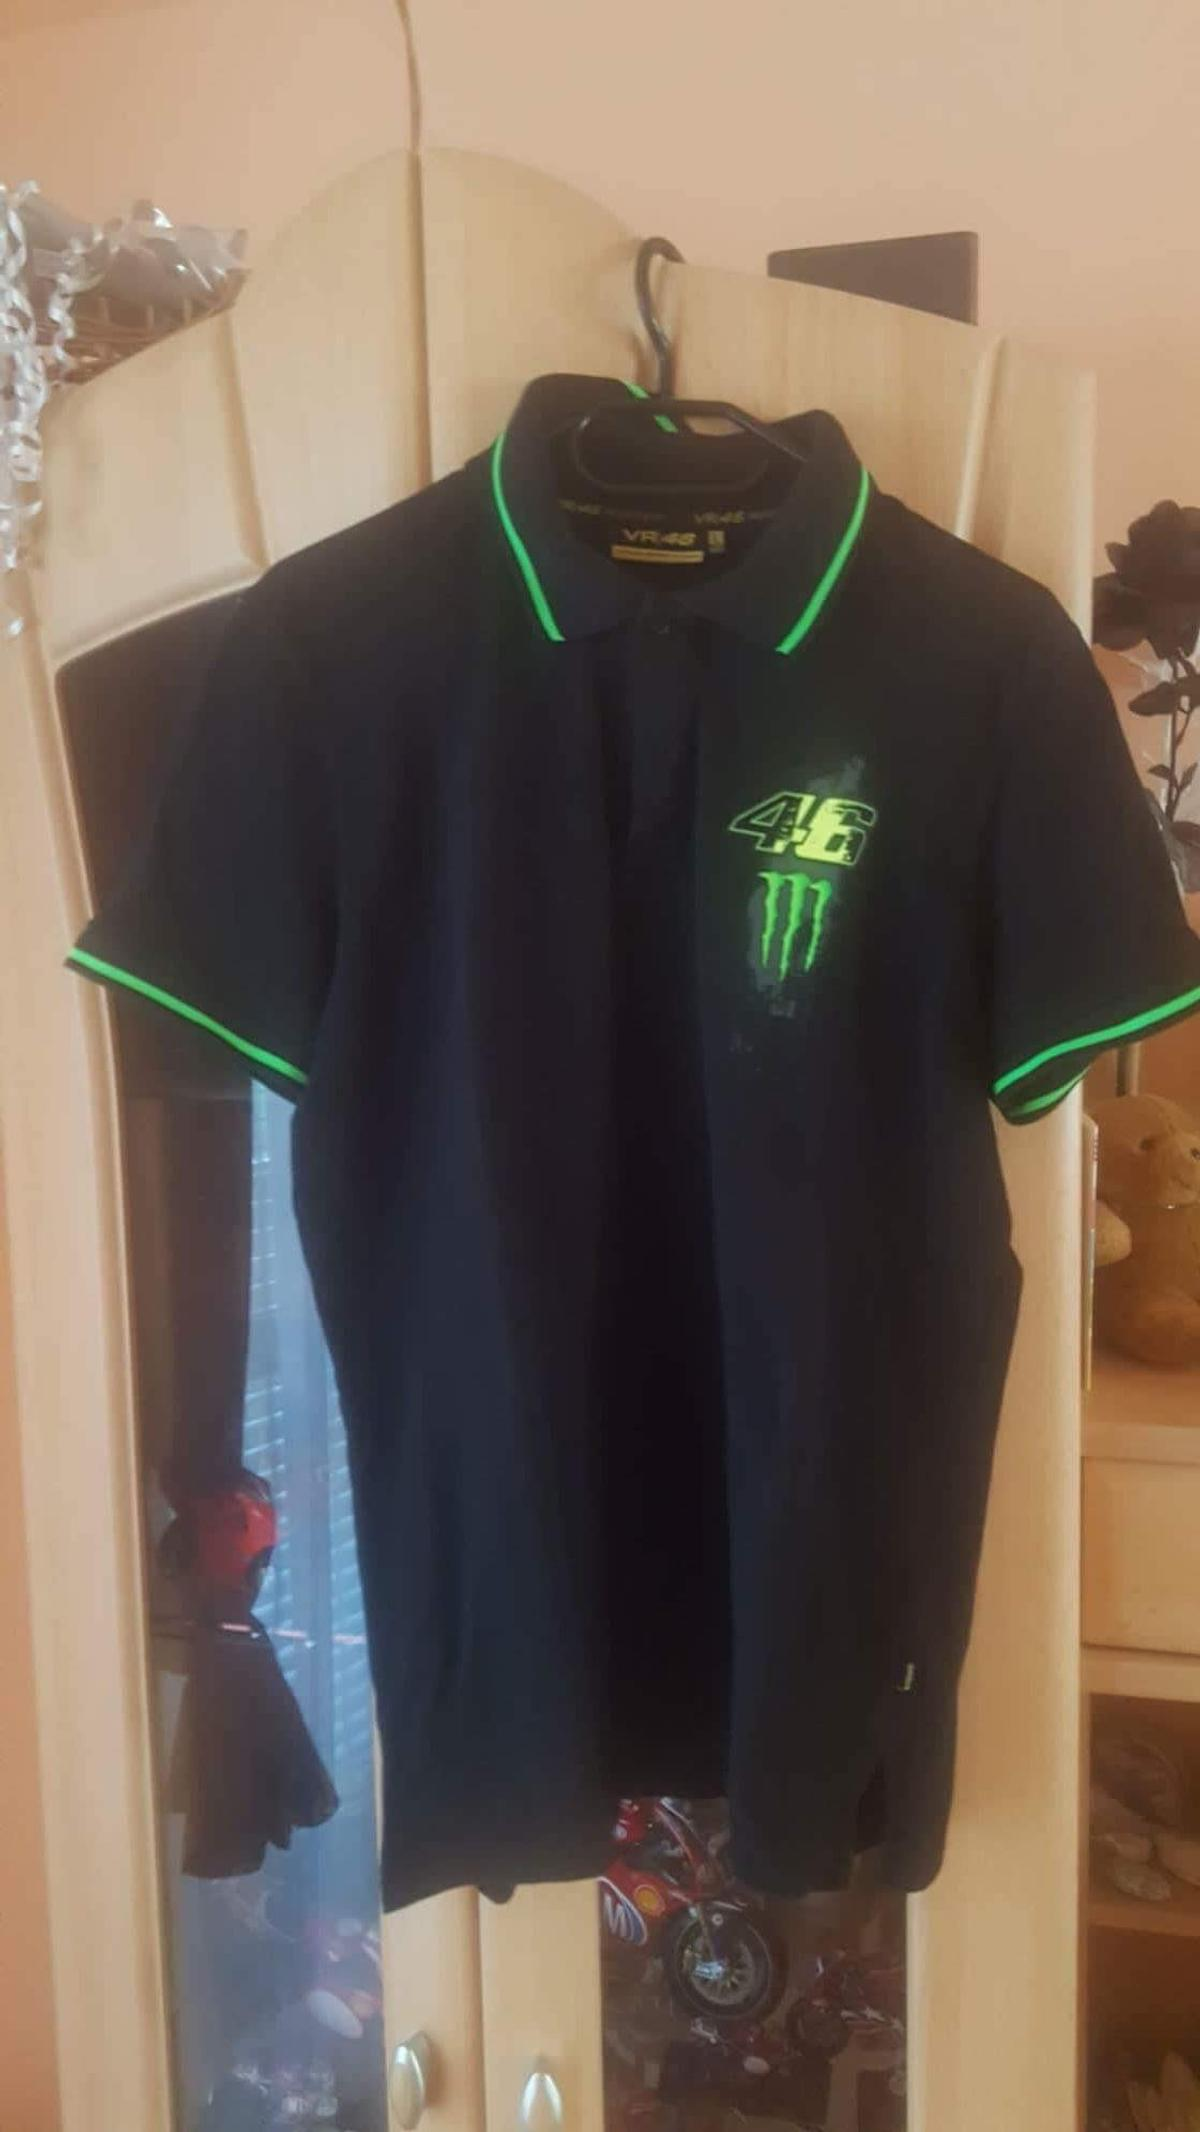 Valentino Rossi Vr46 Monster Polo Shirt In 8510 Stainz For 15 00